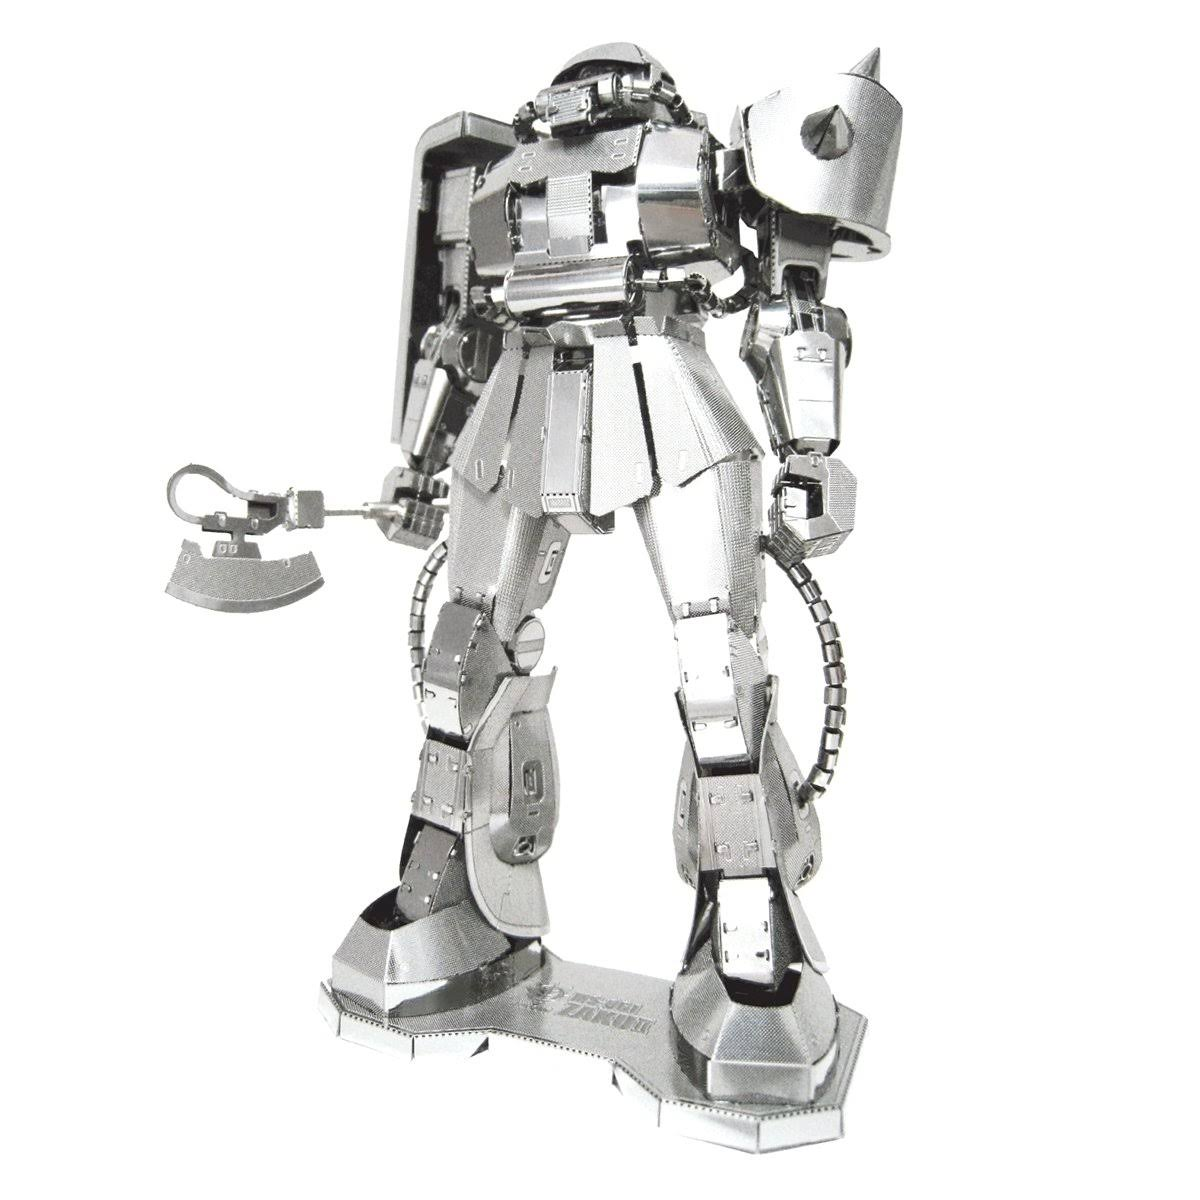 ICONX - Zaku II 3D Metal Model Kit